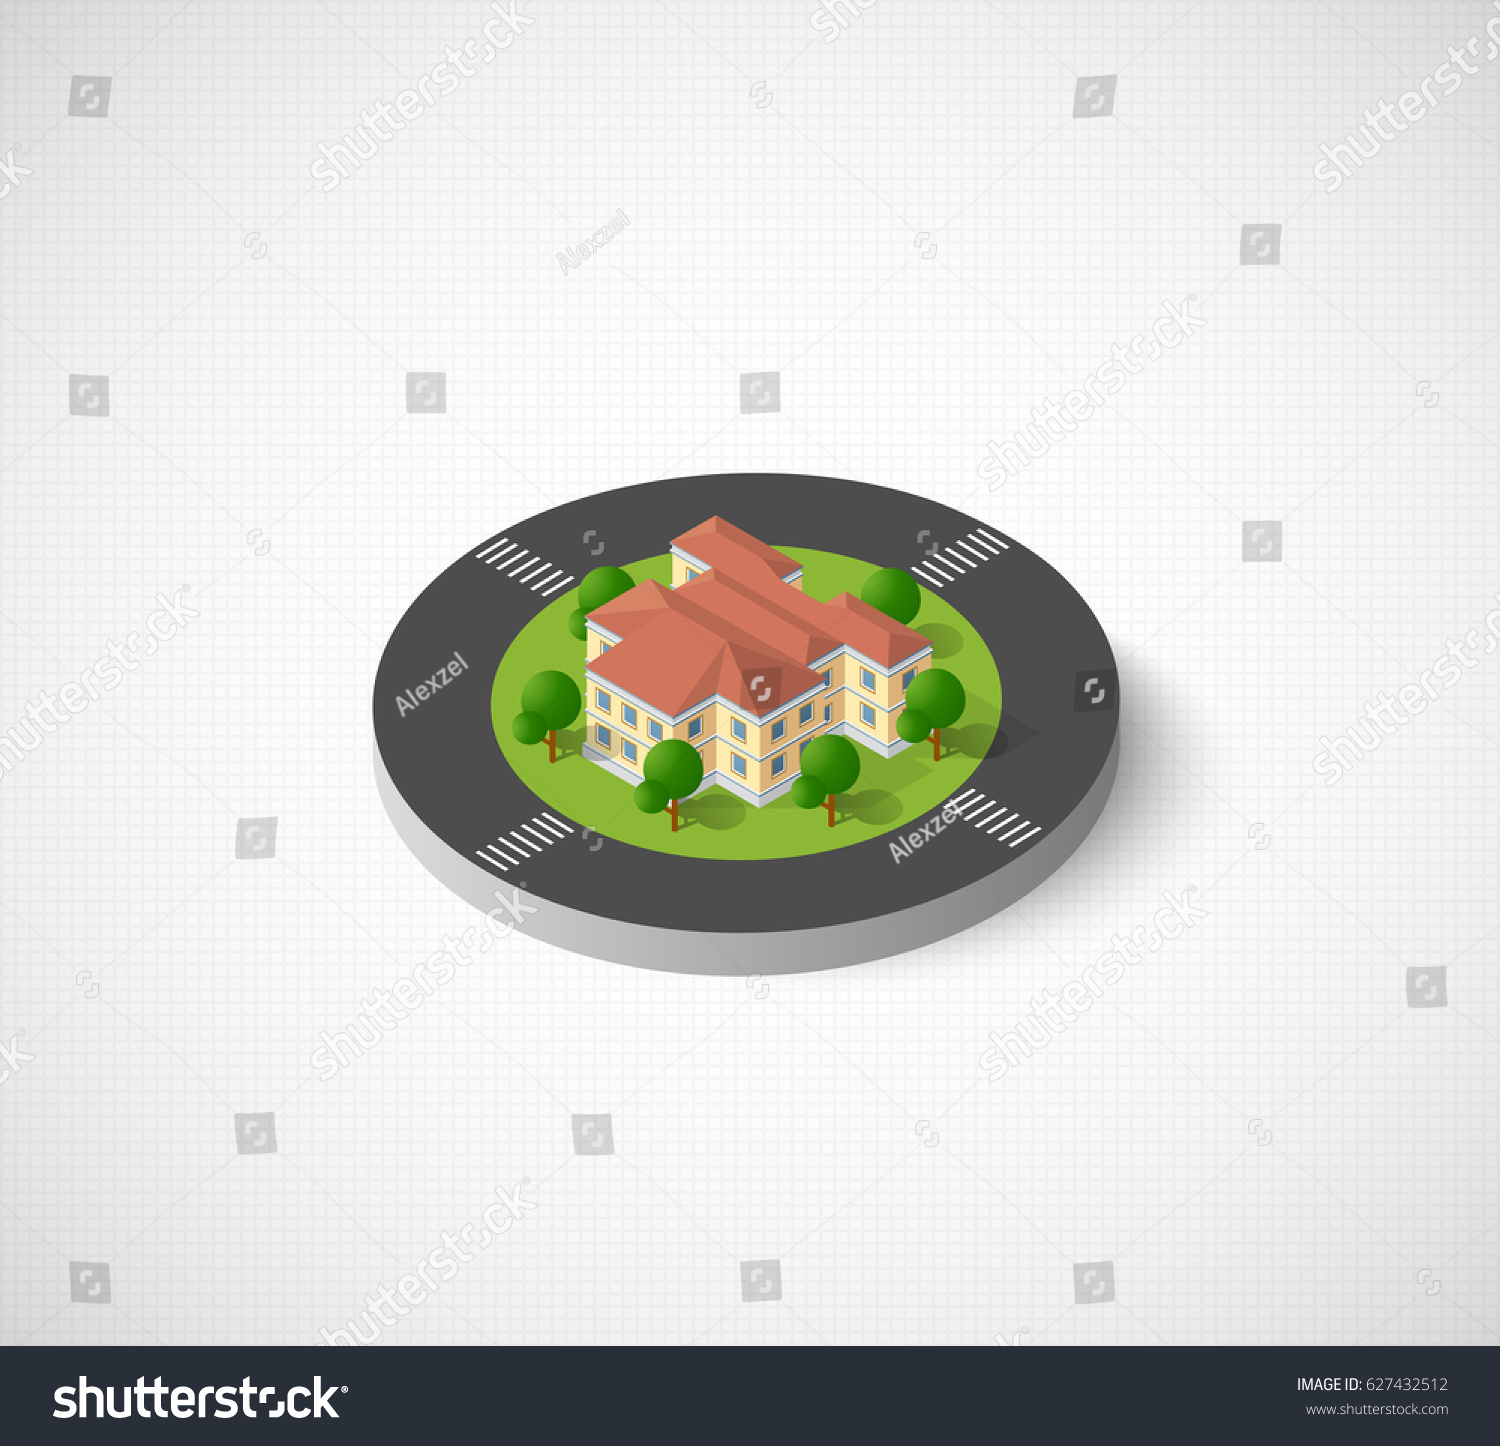 Icon city isometric houses skyscrapers streets stock vector icon of the city with isometric houses skyscrapers streets and trees urban signs biocorpaavc